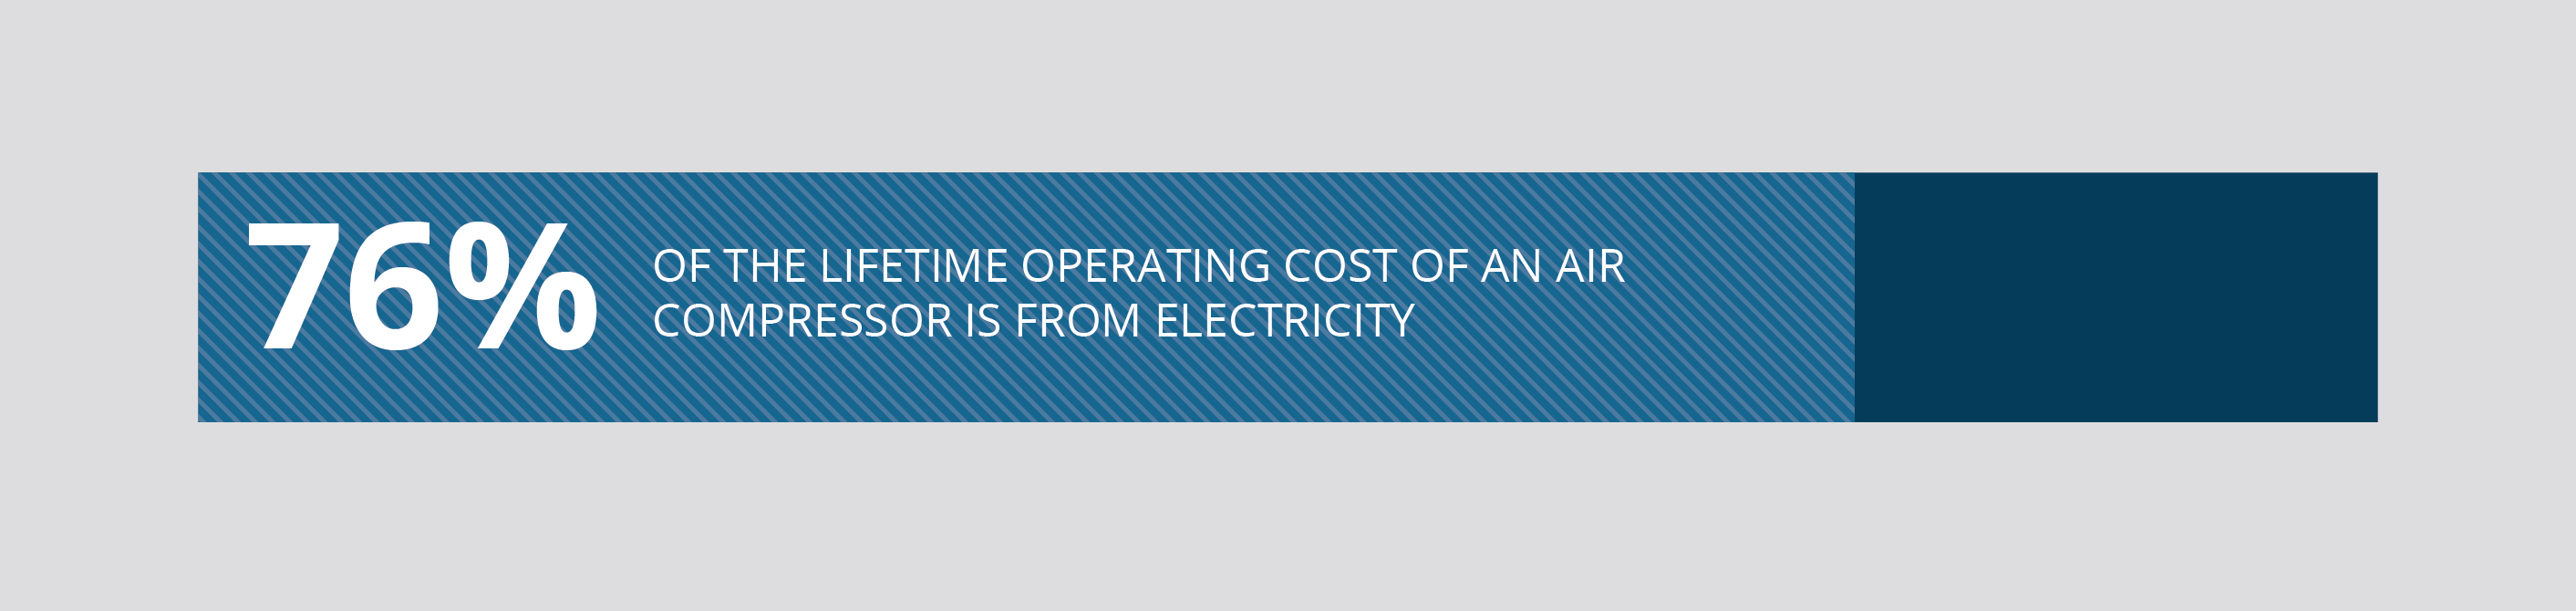 03-lifetime-operating-cost-01